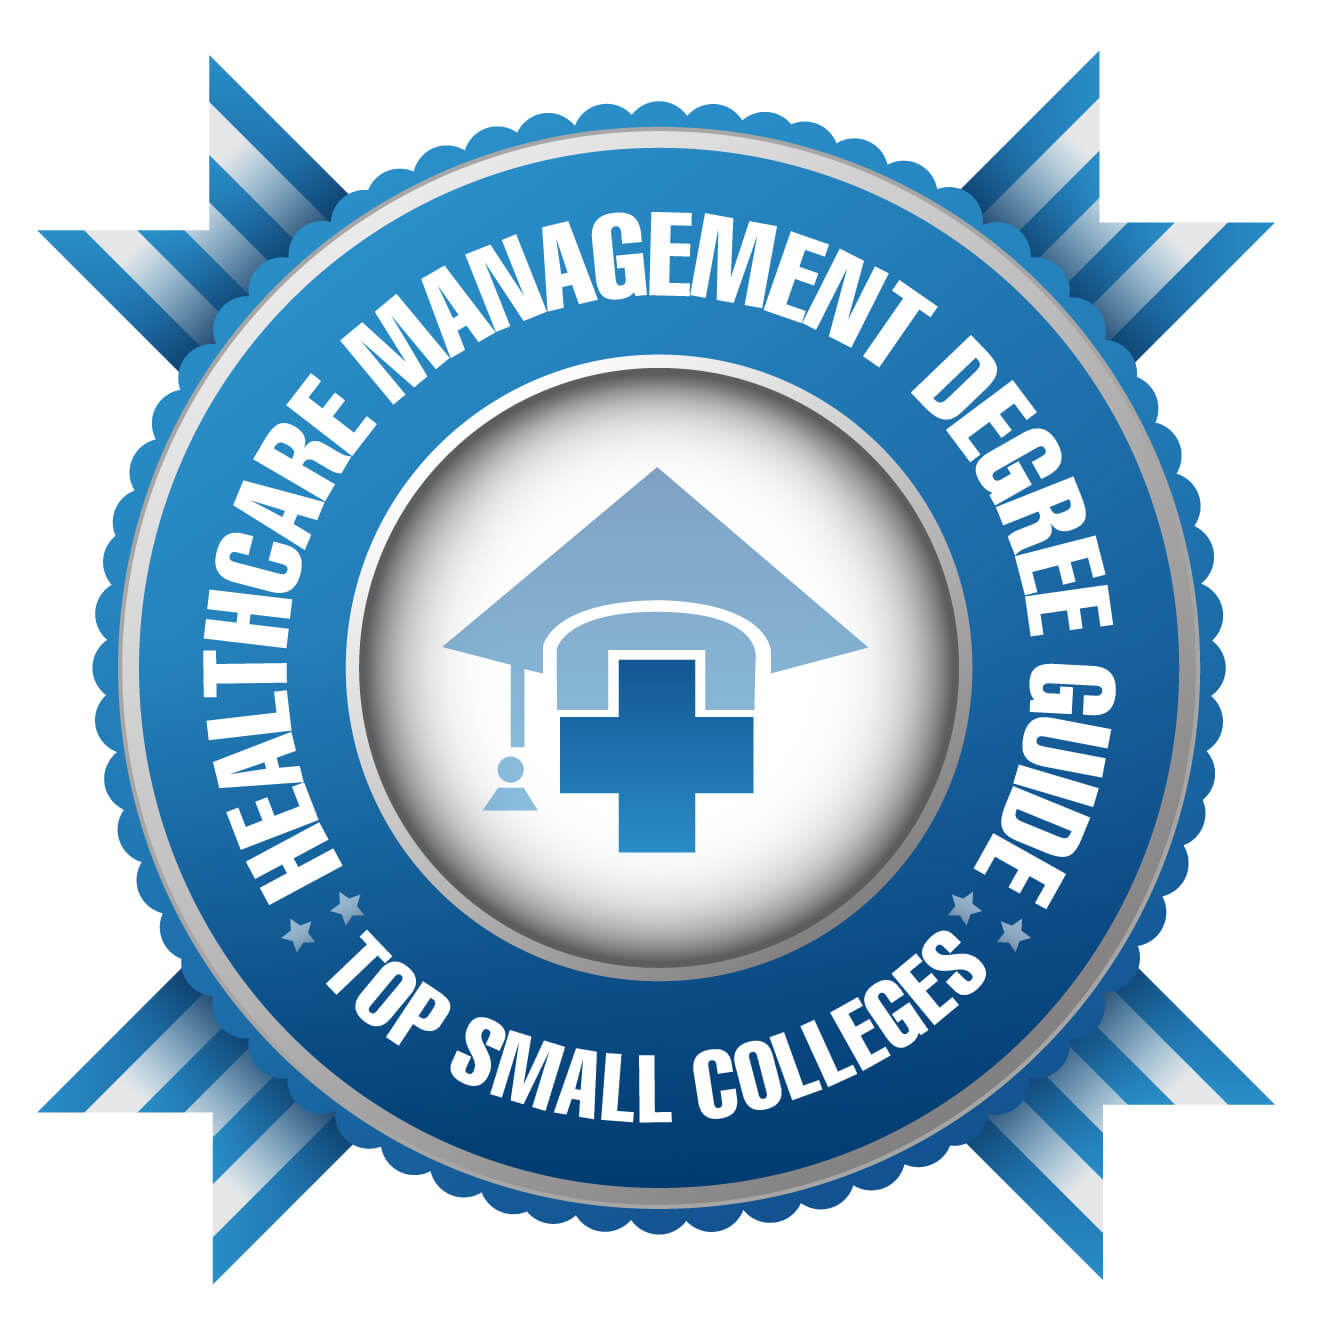 Top 20 small colleges for healthcare management degrees 2015 click here for high resolution badge buycottarizona